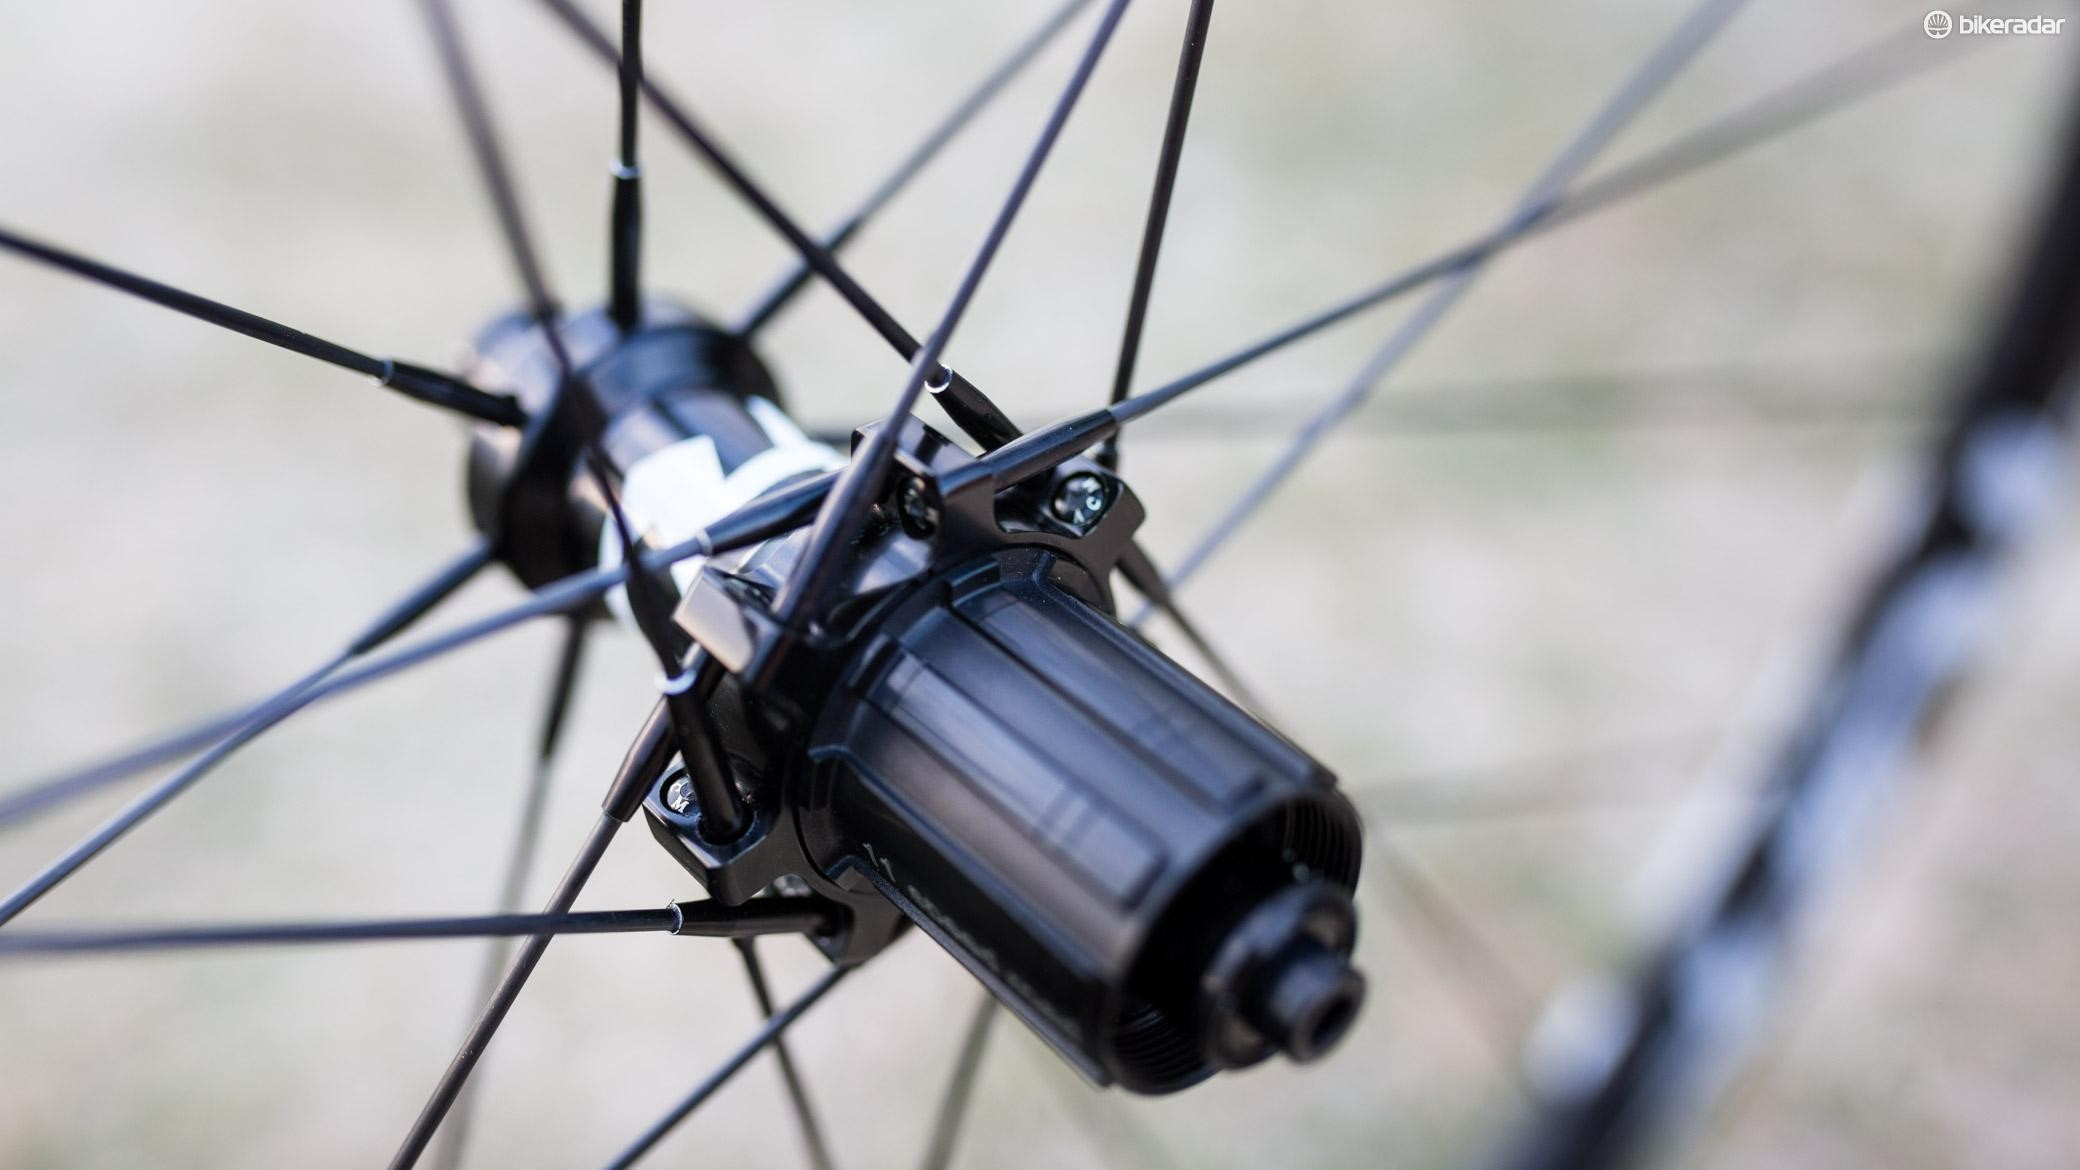 The Carbon Matrix Spokes are straight pull, but also see a proprietary spoke head, meaning they also need a proprietary hub flange